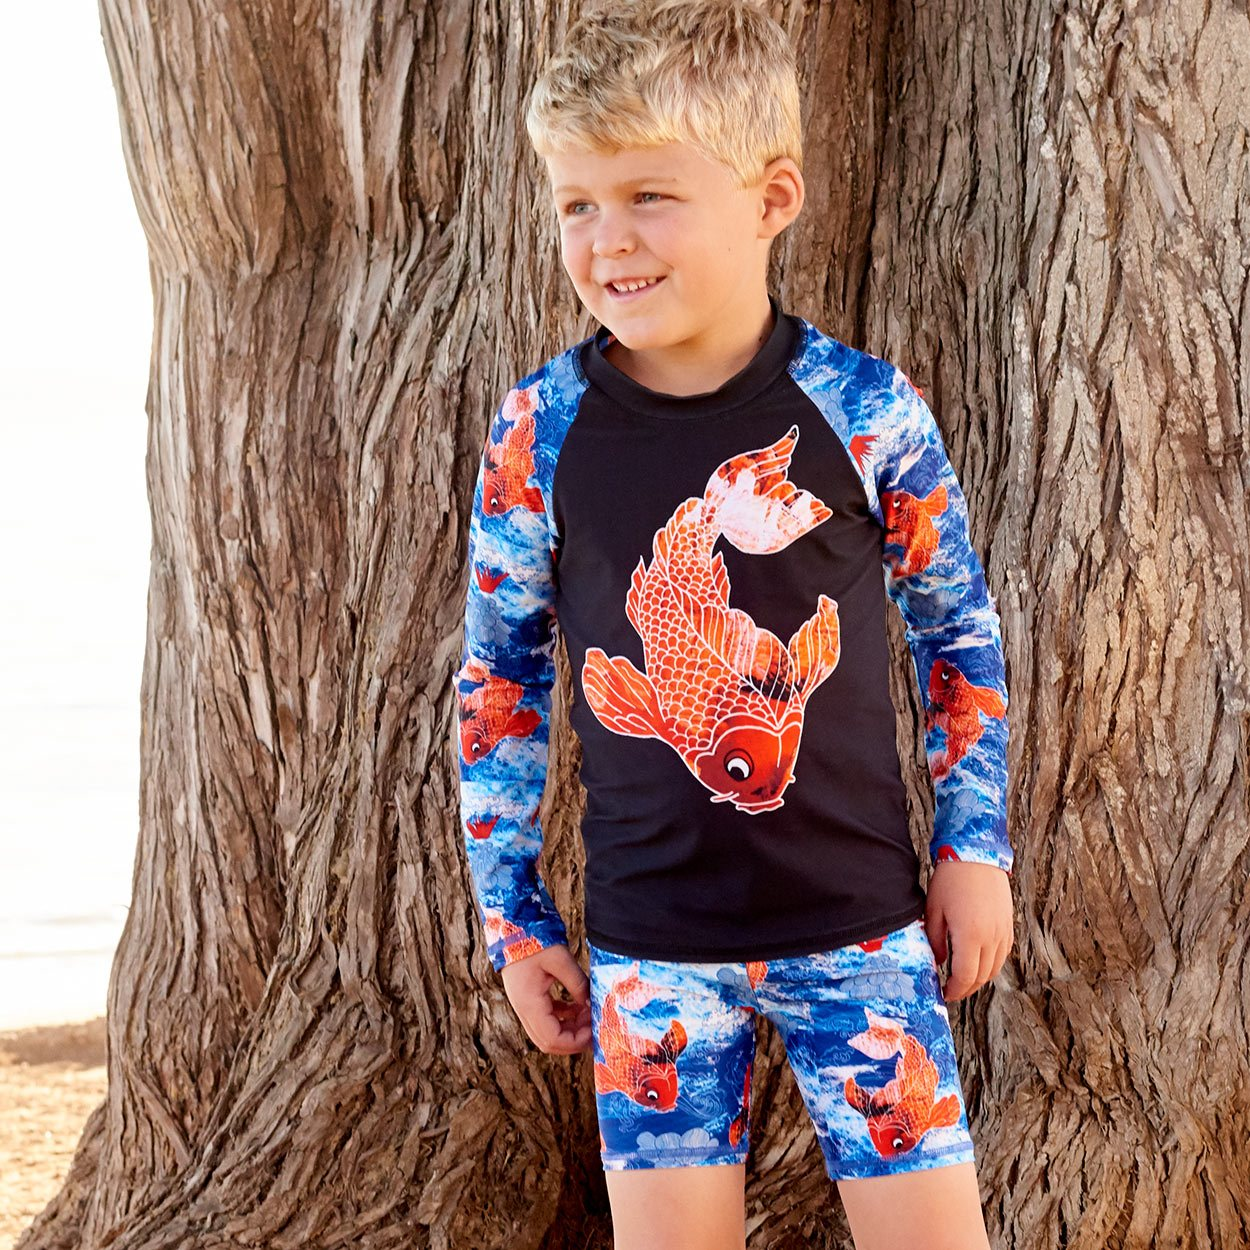 Koi Fish Sunblocker Shorts Upf50 Kids Boys Size 2 12 White Blue Orange Boy At The Beach In Front Of A Tree Sunpoplife